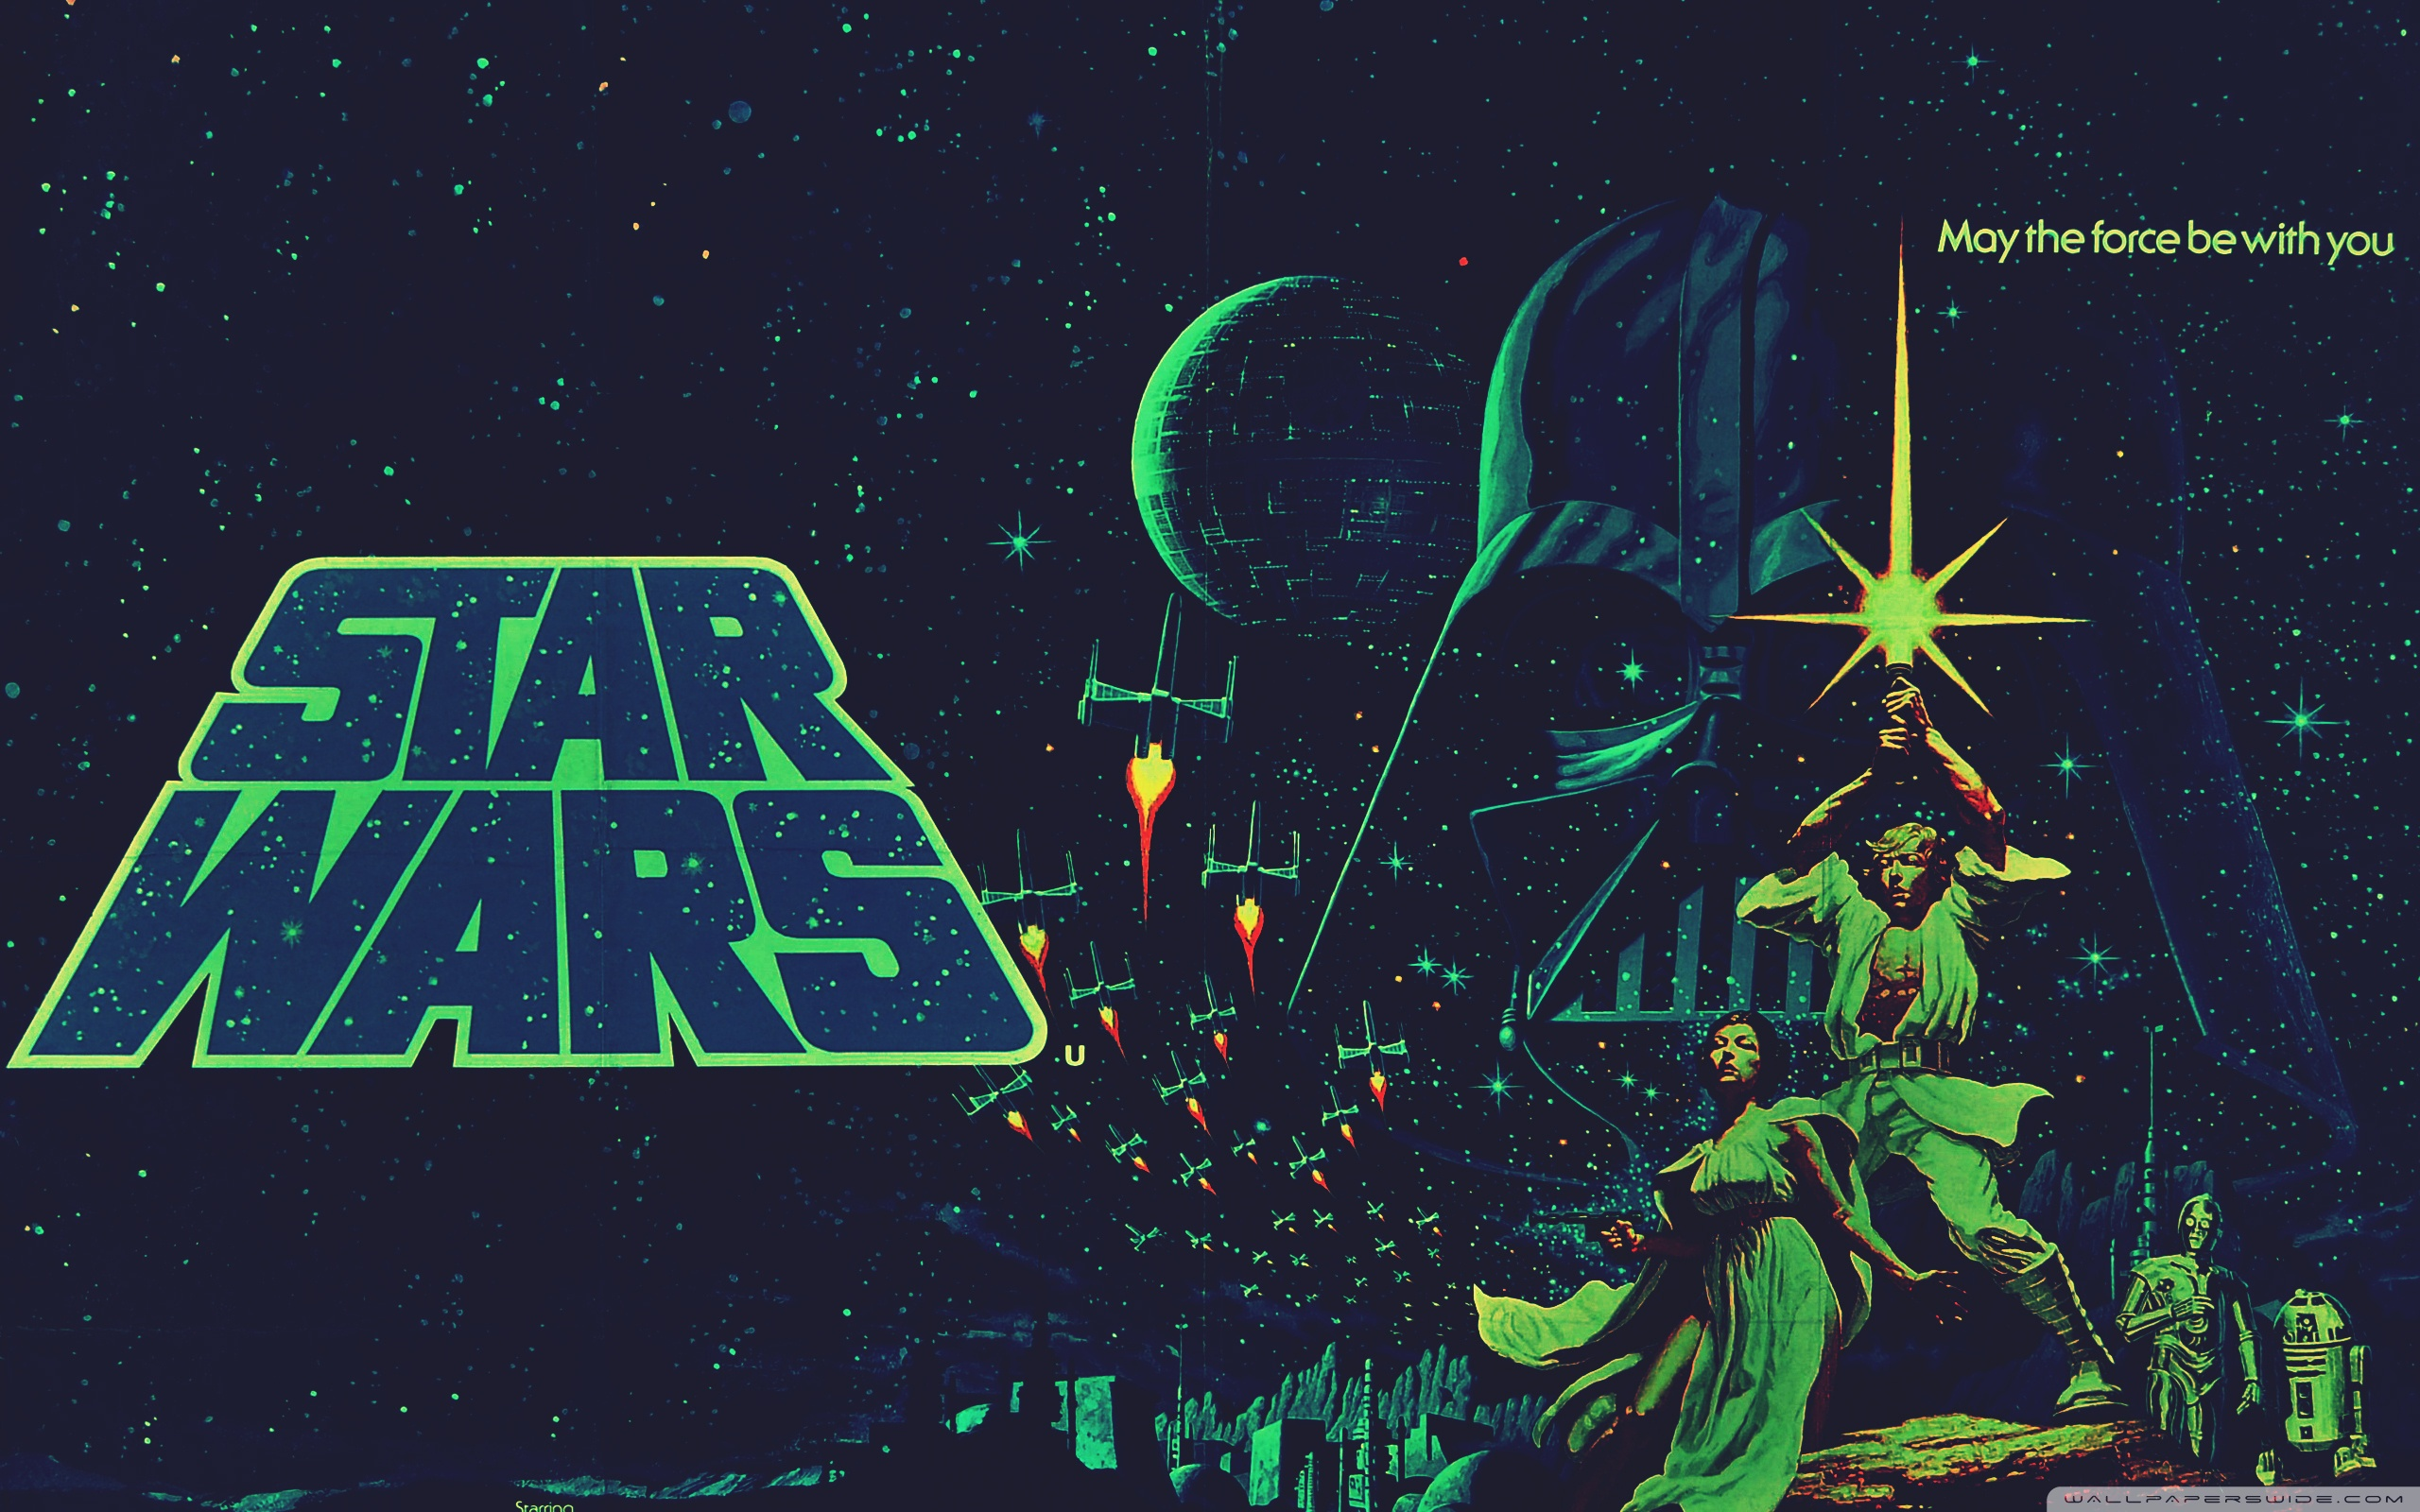 Star Wars Retro Wallpaper